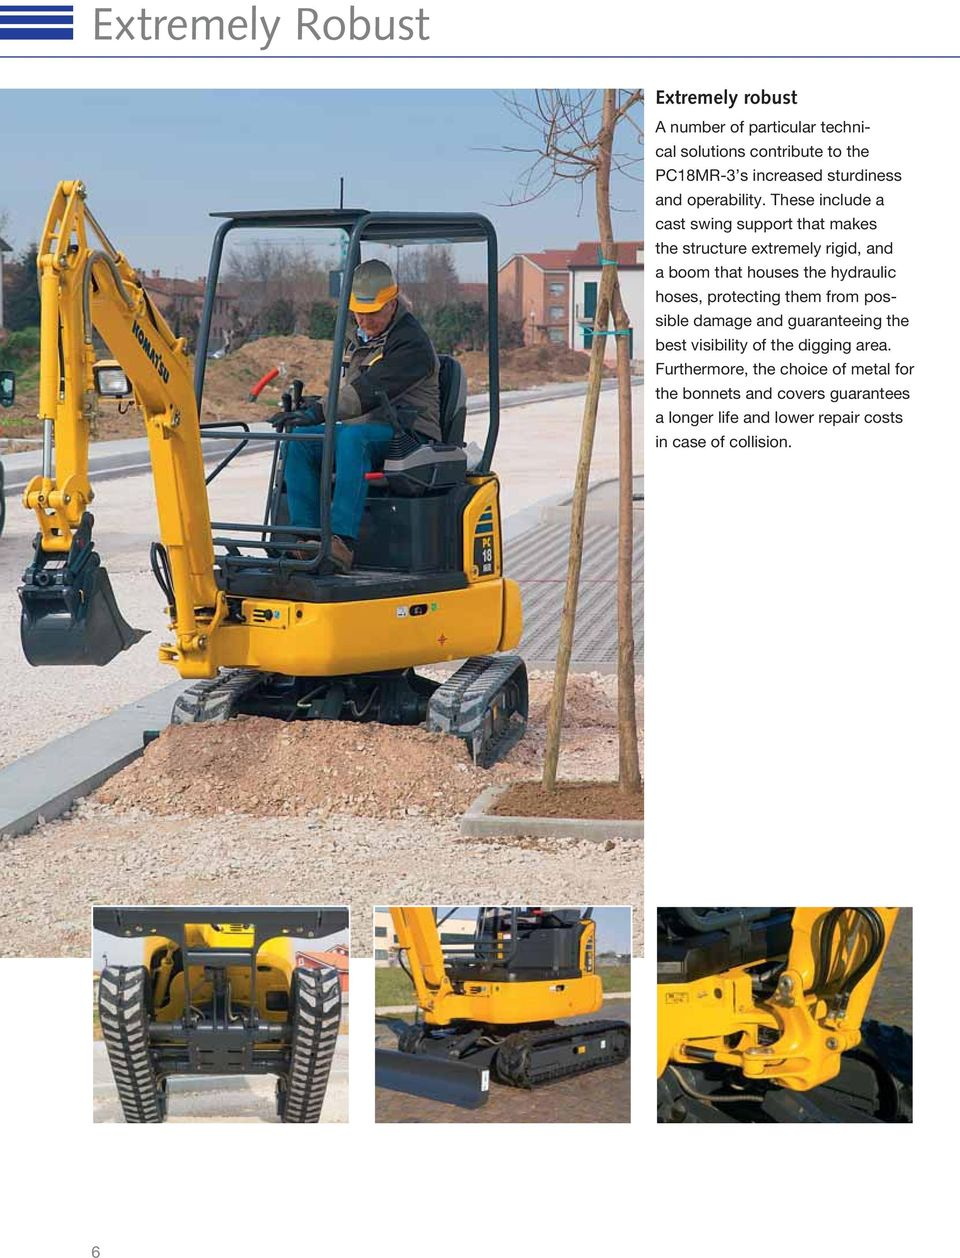 These include a cast swing support that makes the structure extremely rigid, and a boom that houses the hydraulic hoses,